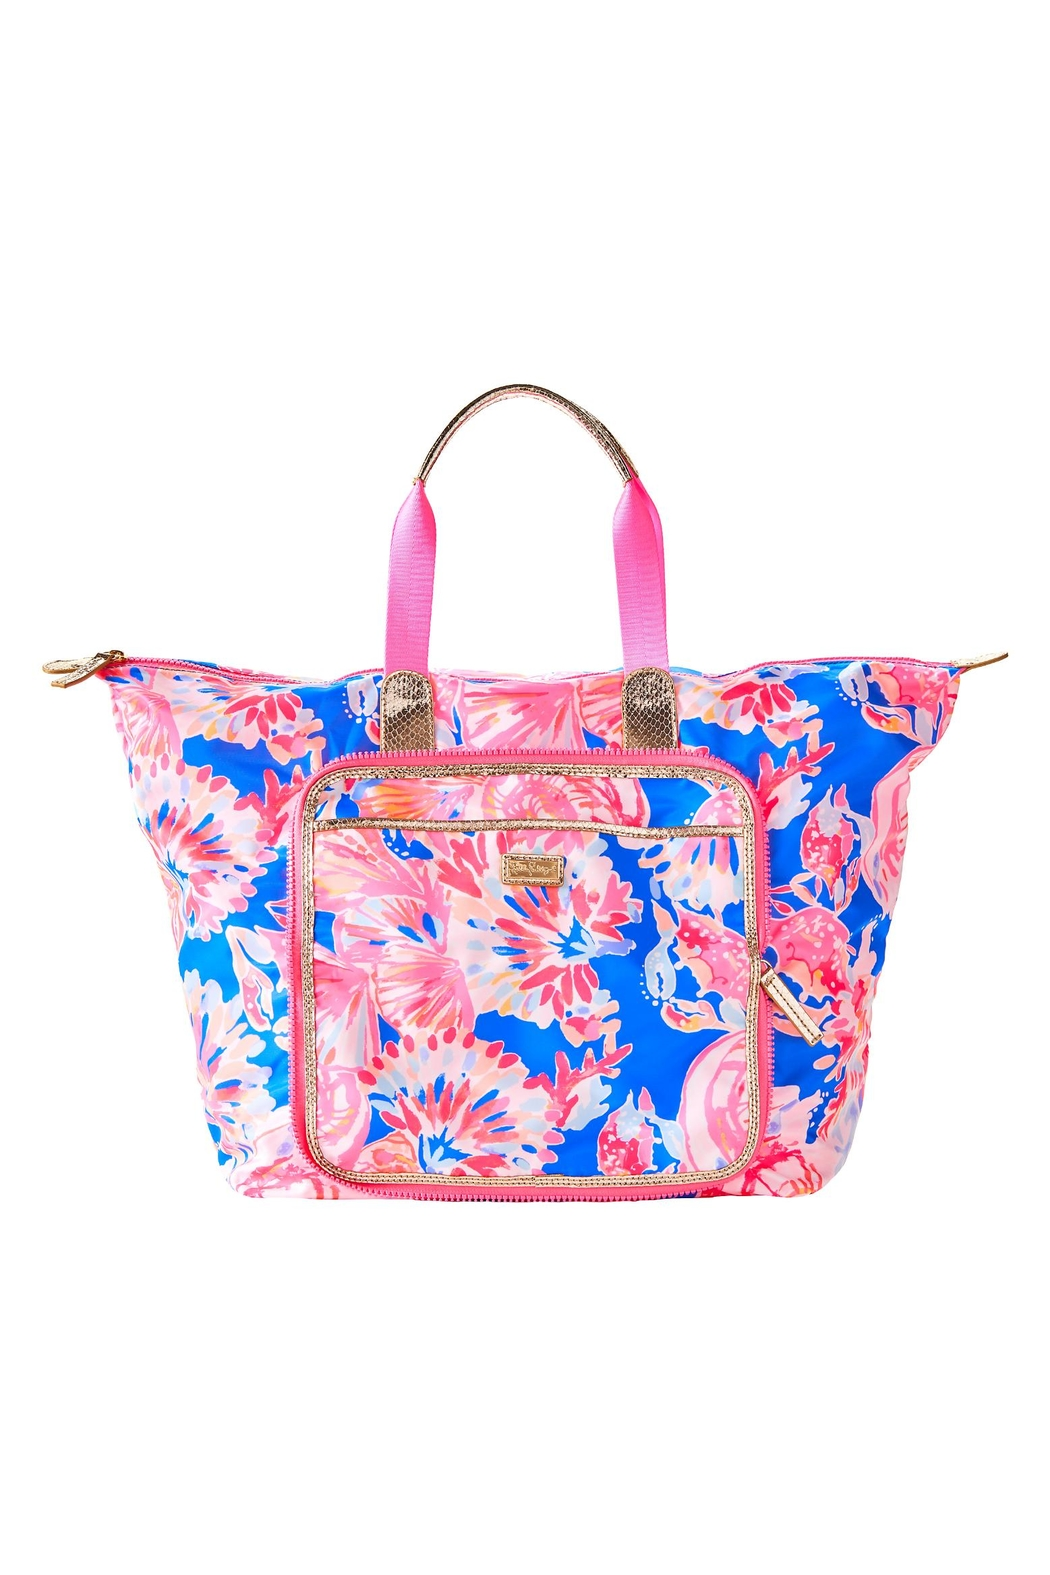 Lilly Pulitzer Wanderlust Packable Tote - Main Image